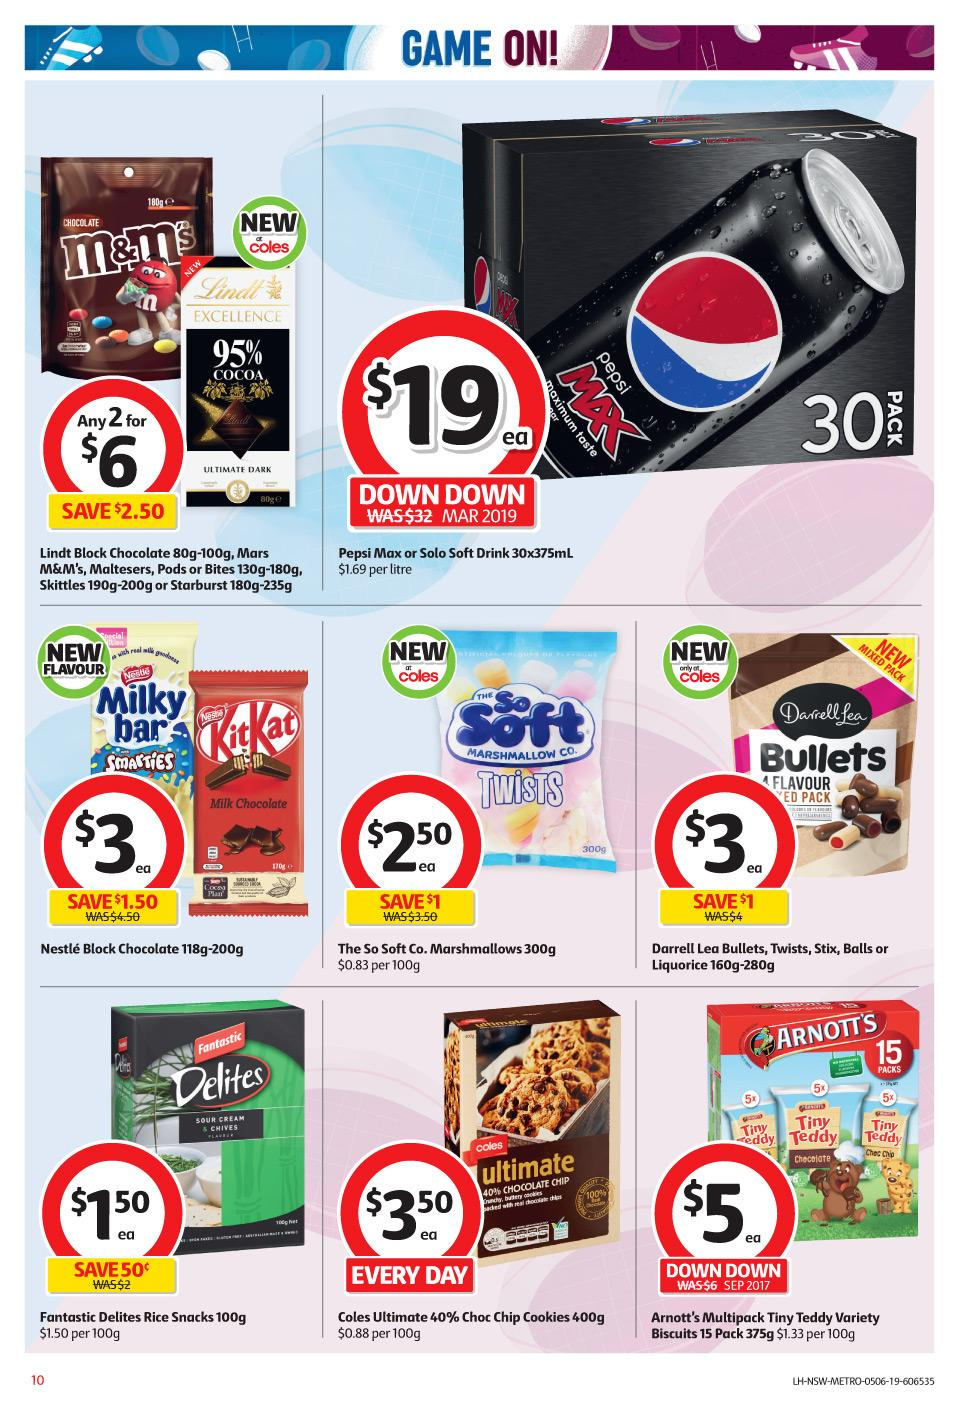 Officeworks Catalogue Eofything Jun 2019 Page 10 - Www imagez co